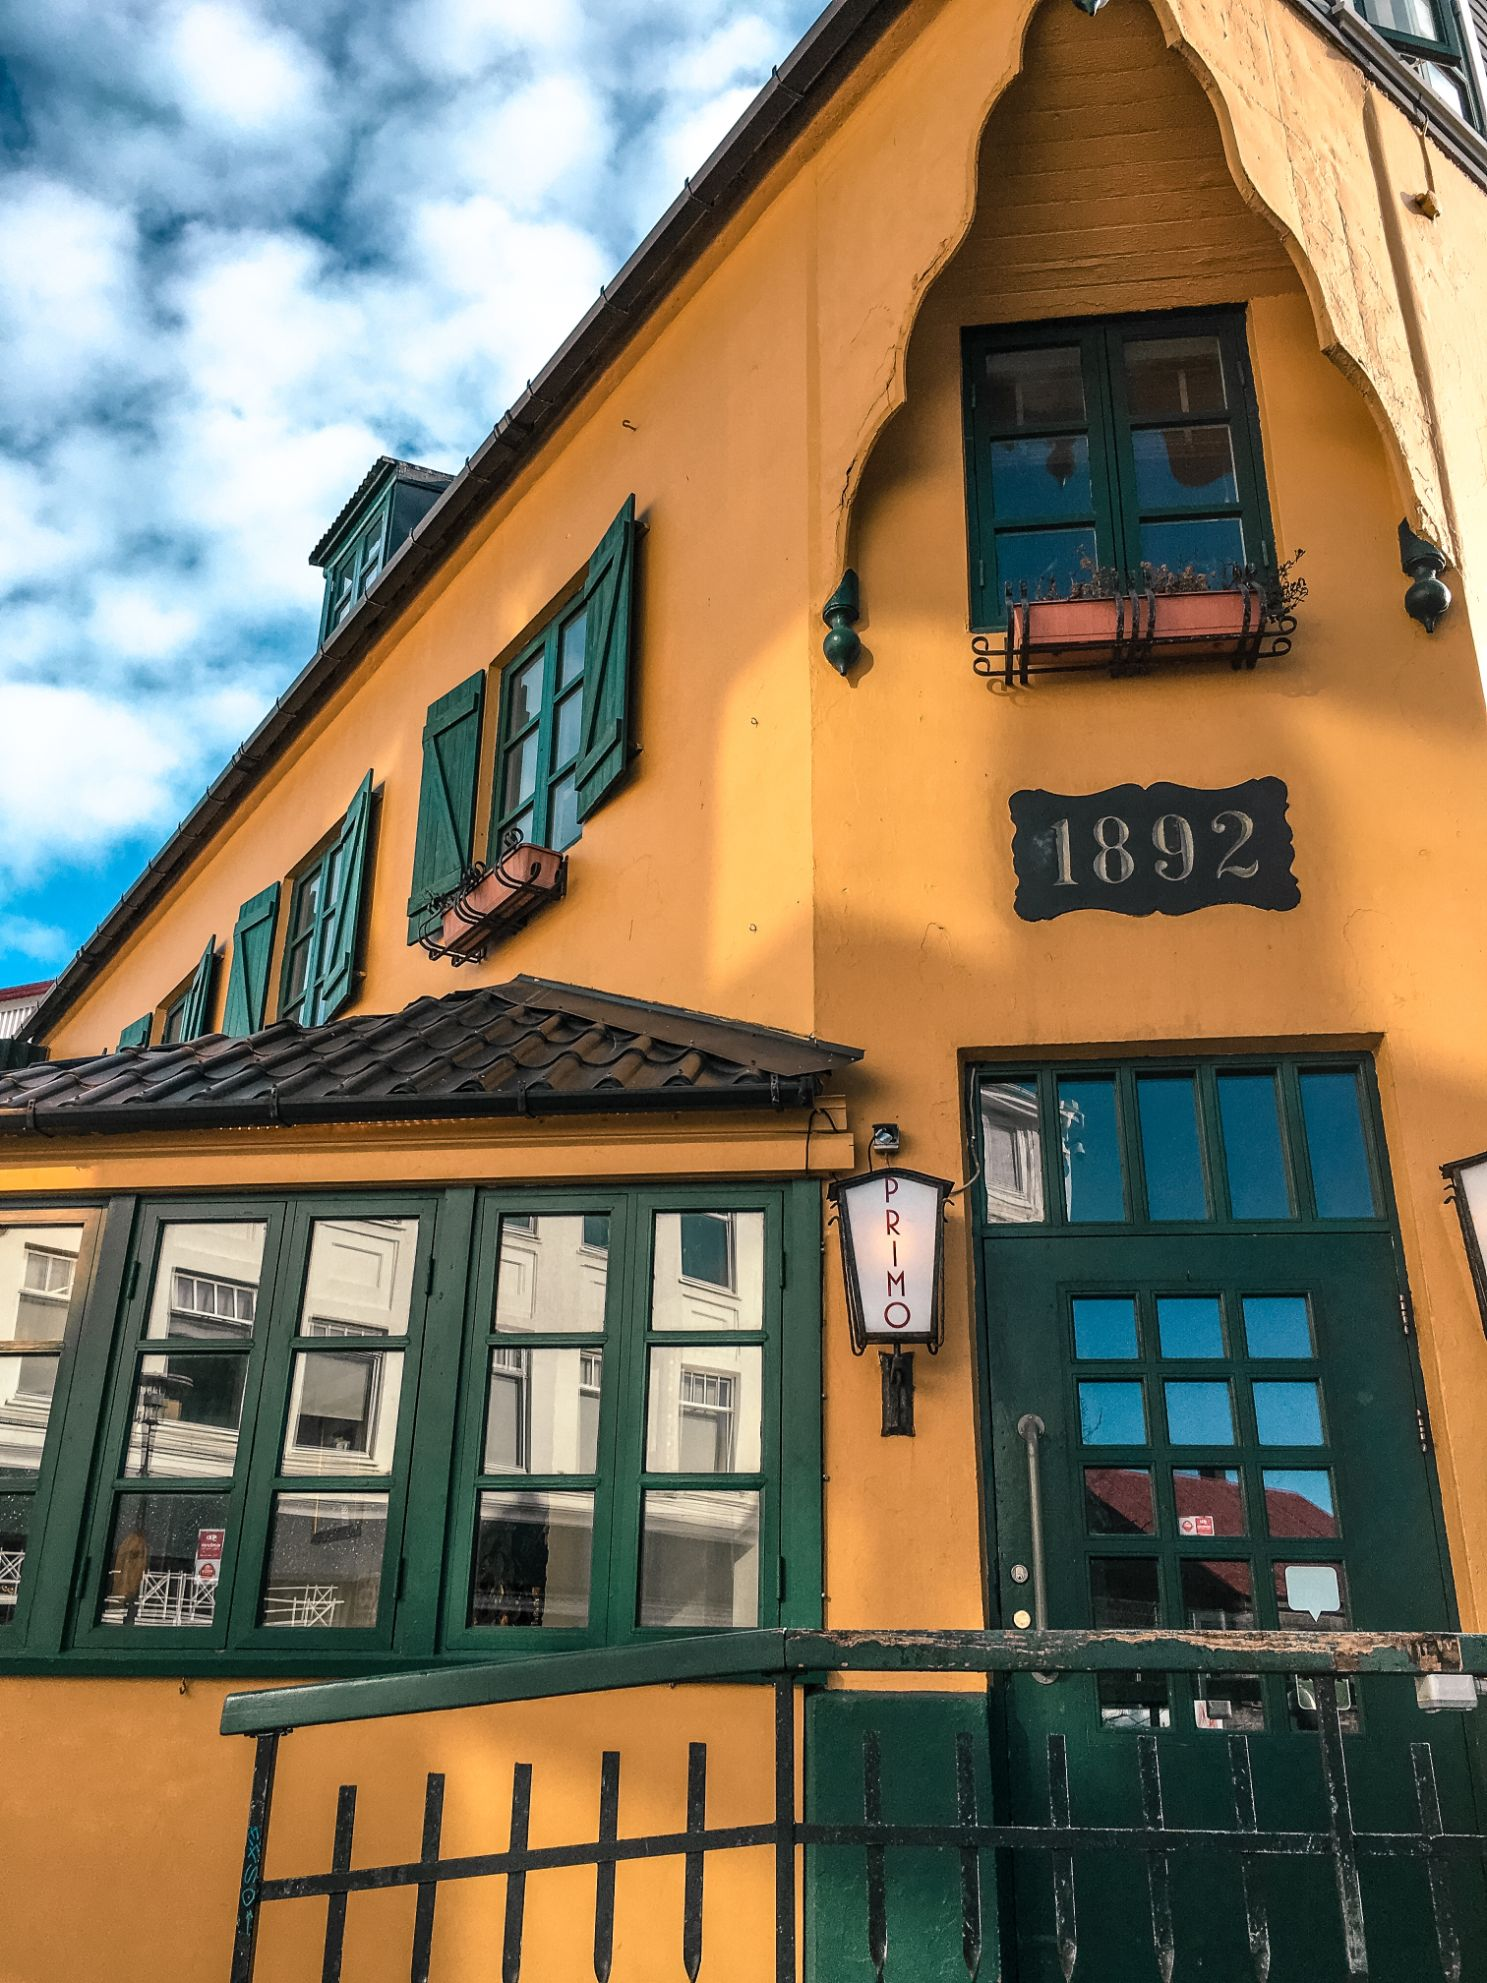 Exterior of Primo Ristorante in downtown Reykjavik Iceland with a sign that reads 1892 over the doorway - stop in 24 hour Iceland itinerary